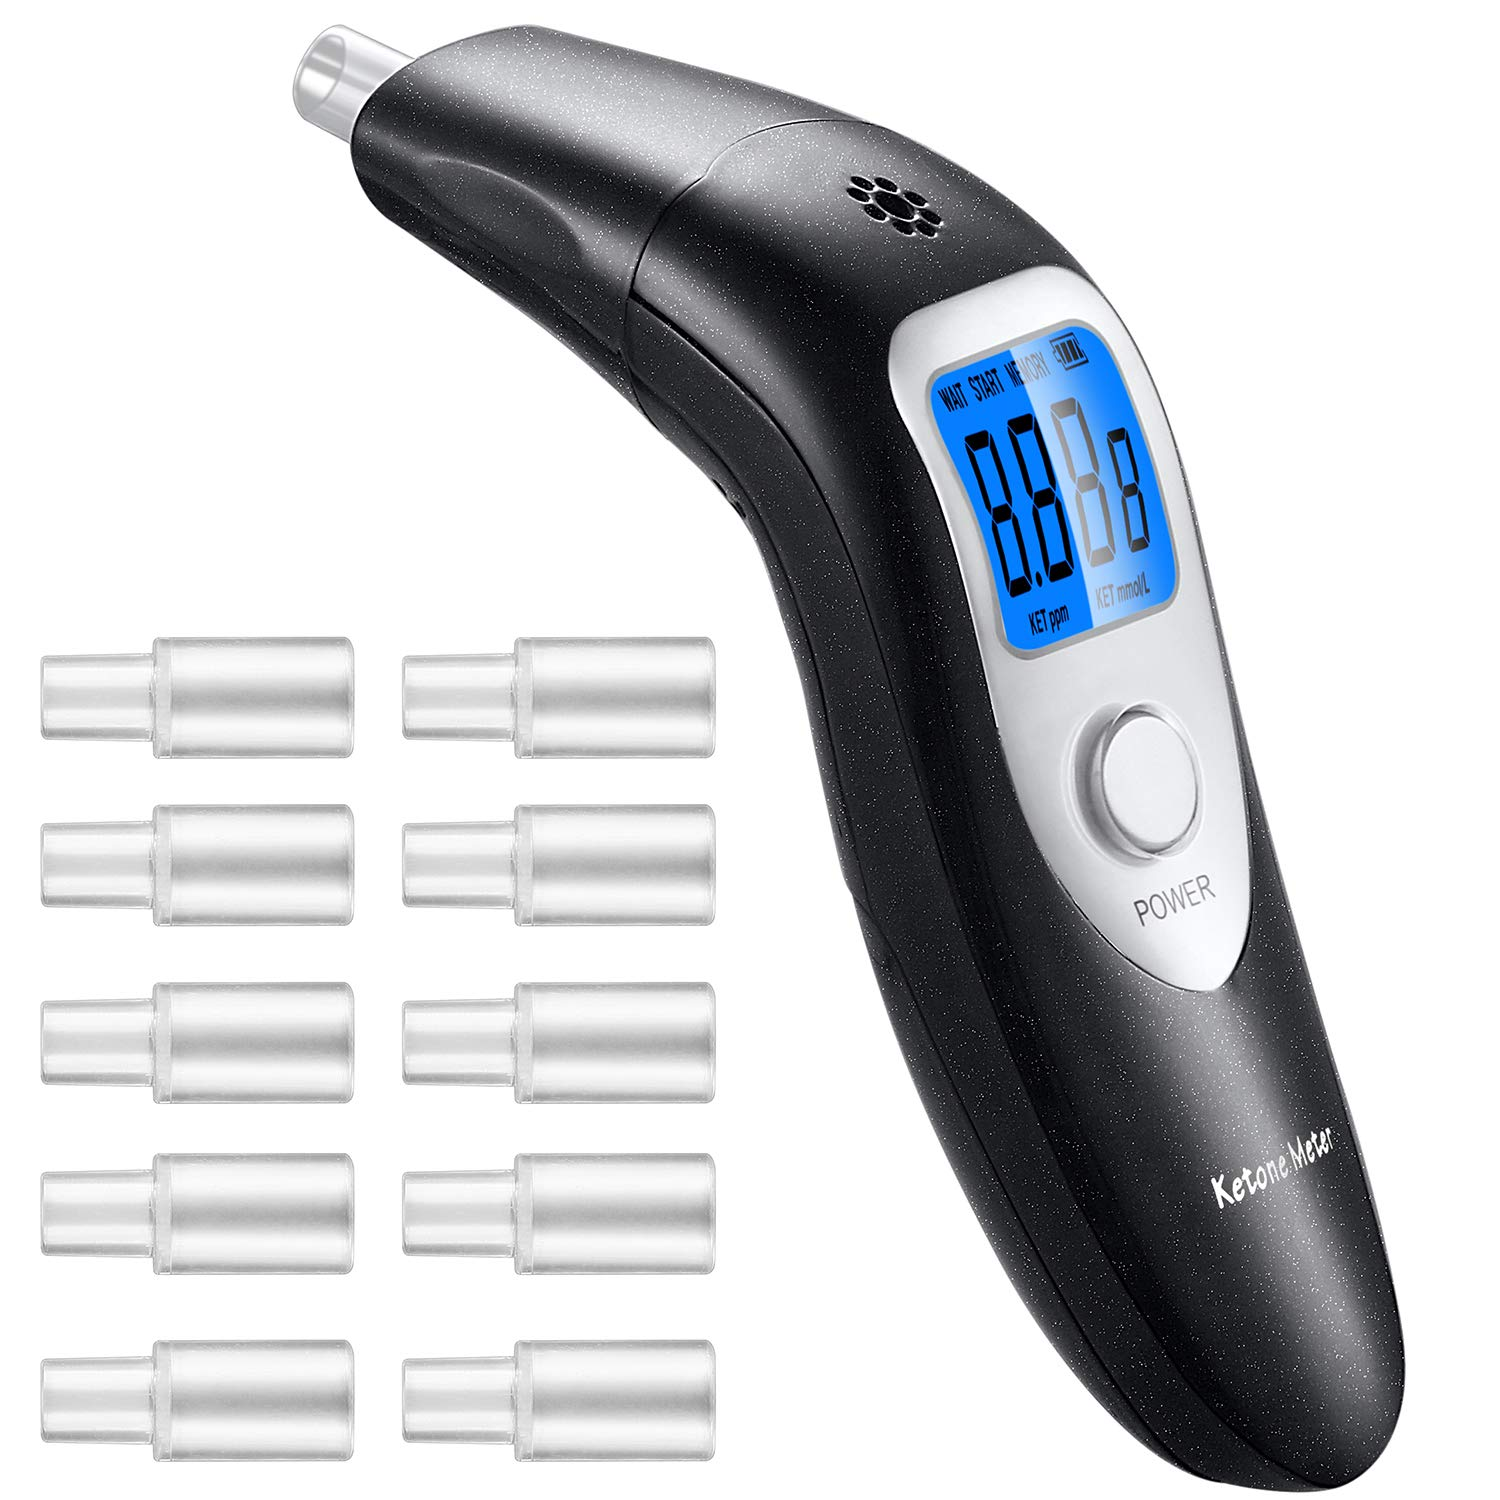 GDbow Ketone Meter, Portable Digital Ketone Breath Analyzer with 10 Mouthpieces for Personal Use by GDbow